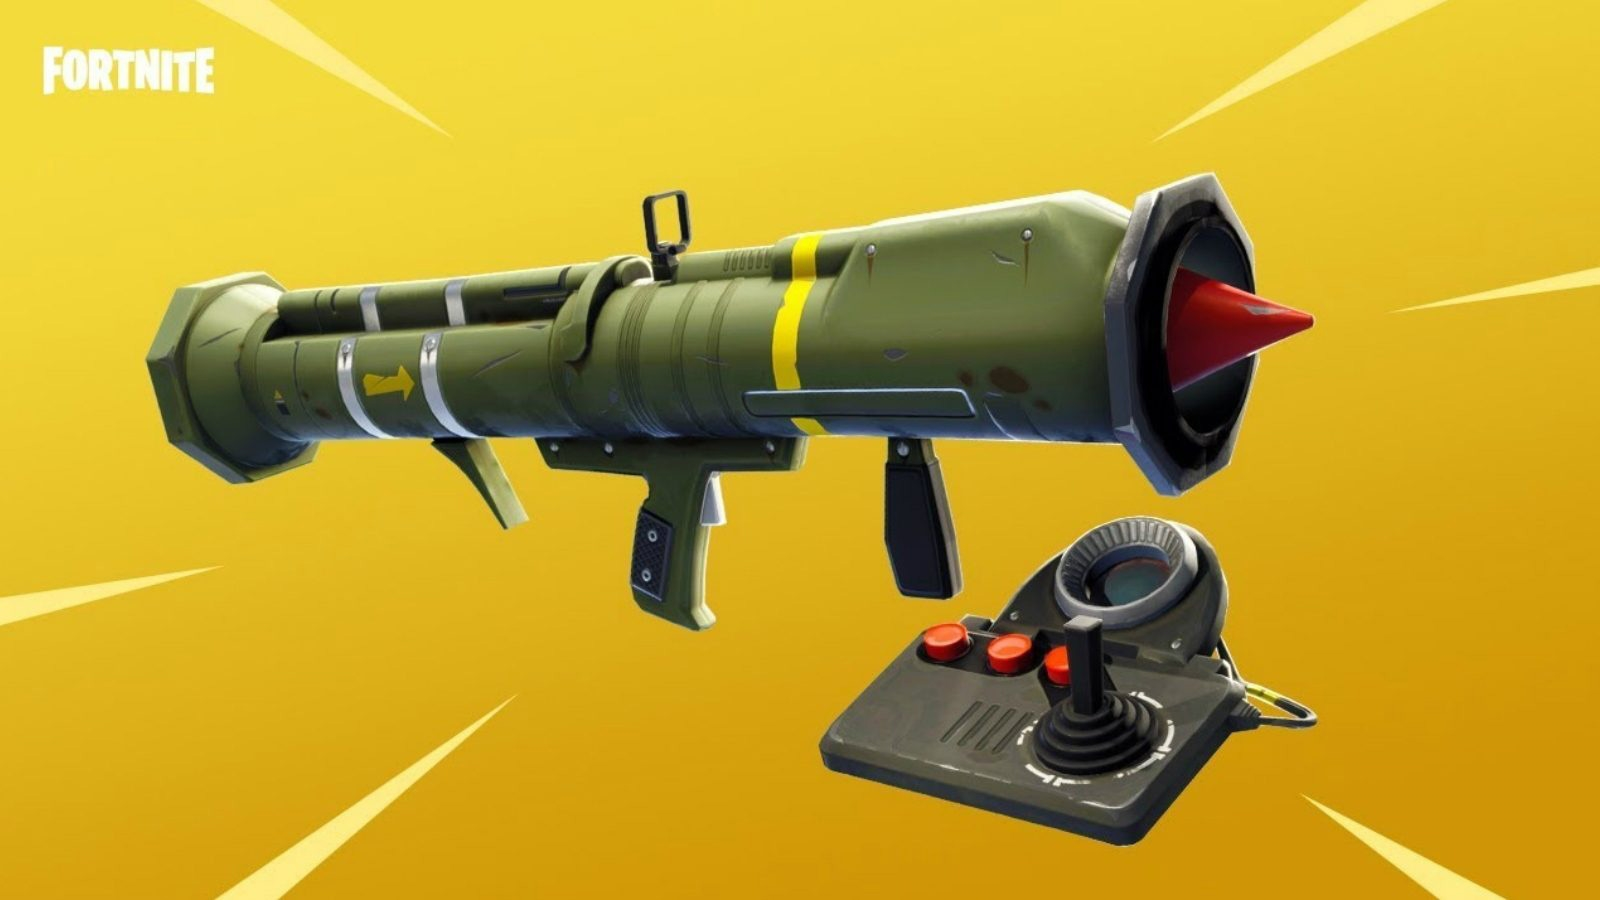 'Fortnite' will bring back guided missiles in a softer, gentler form | DeviceDaily.com